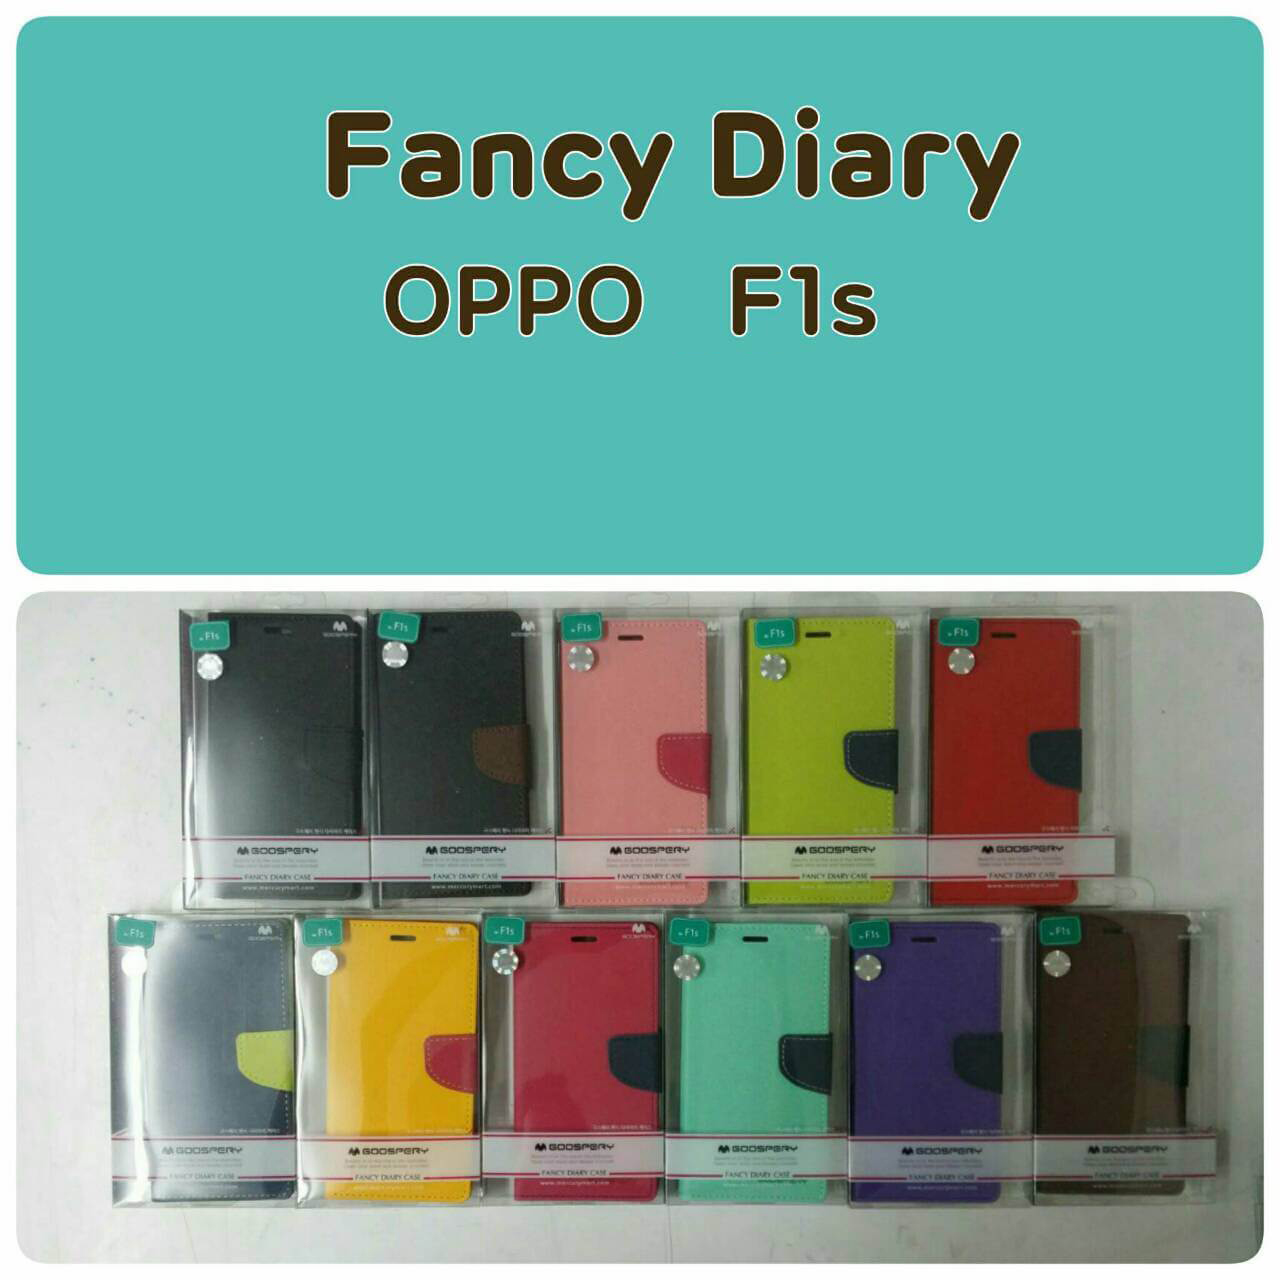 OPPO F1s - เคสฝาพับ Mercury Goospery Fancy Leather Case cover แท้